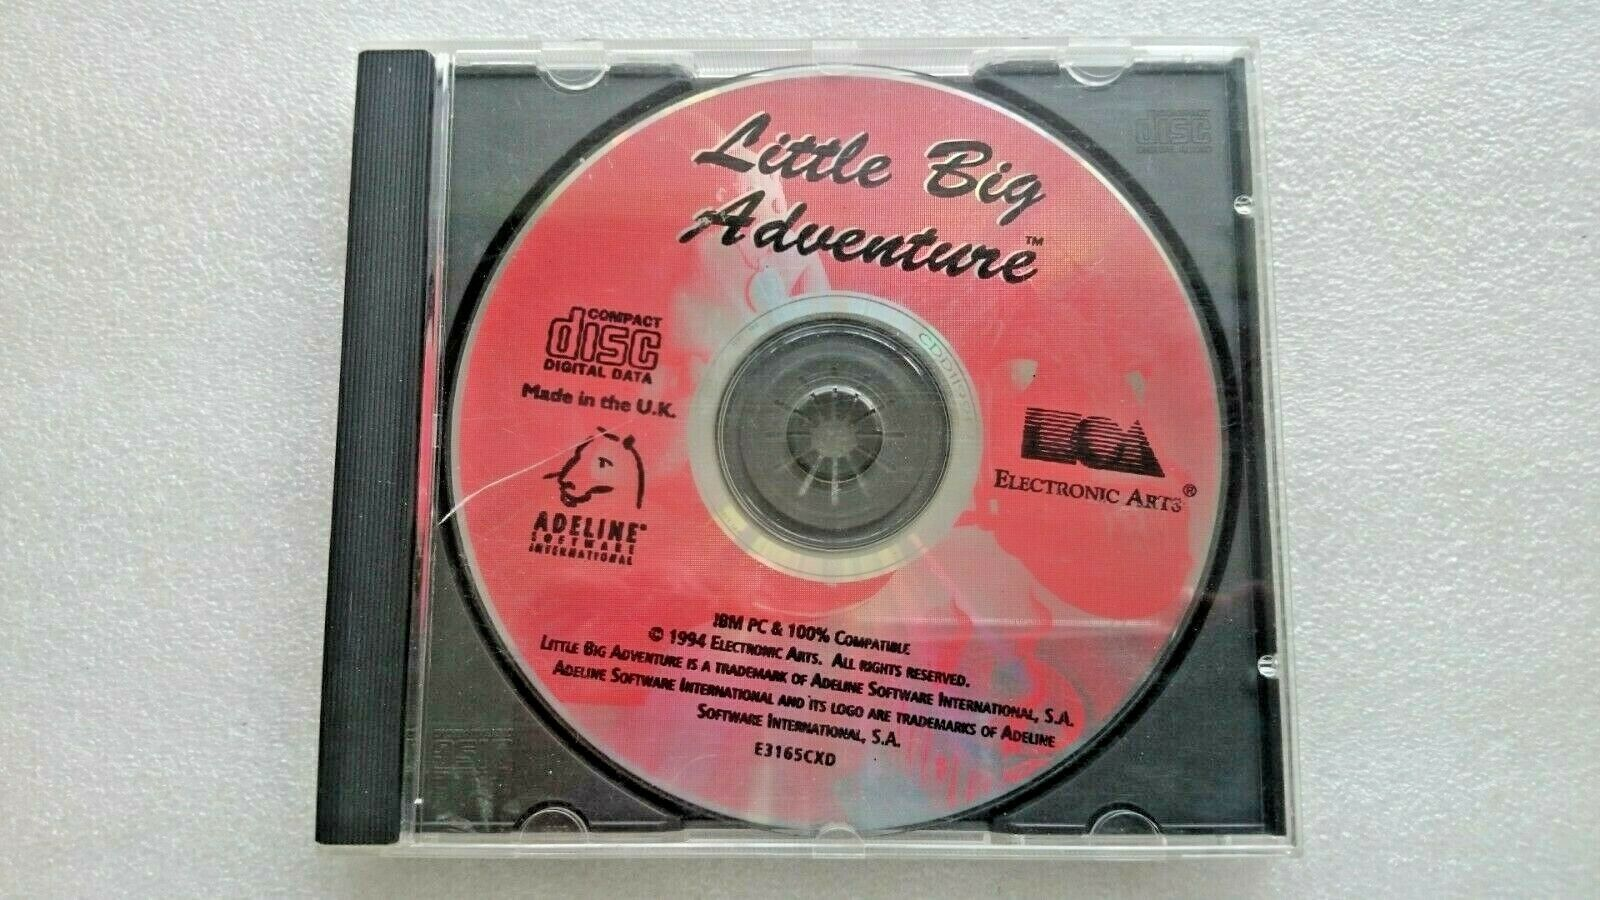 Little Big Adventure (PC Windows 1994) - Disc Only